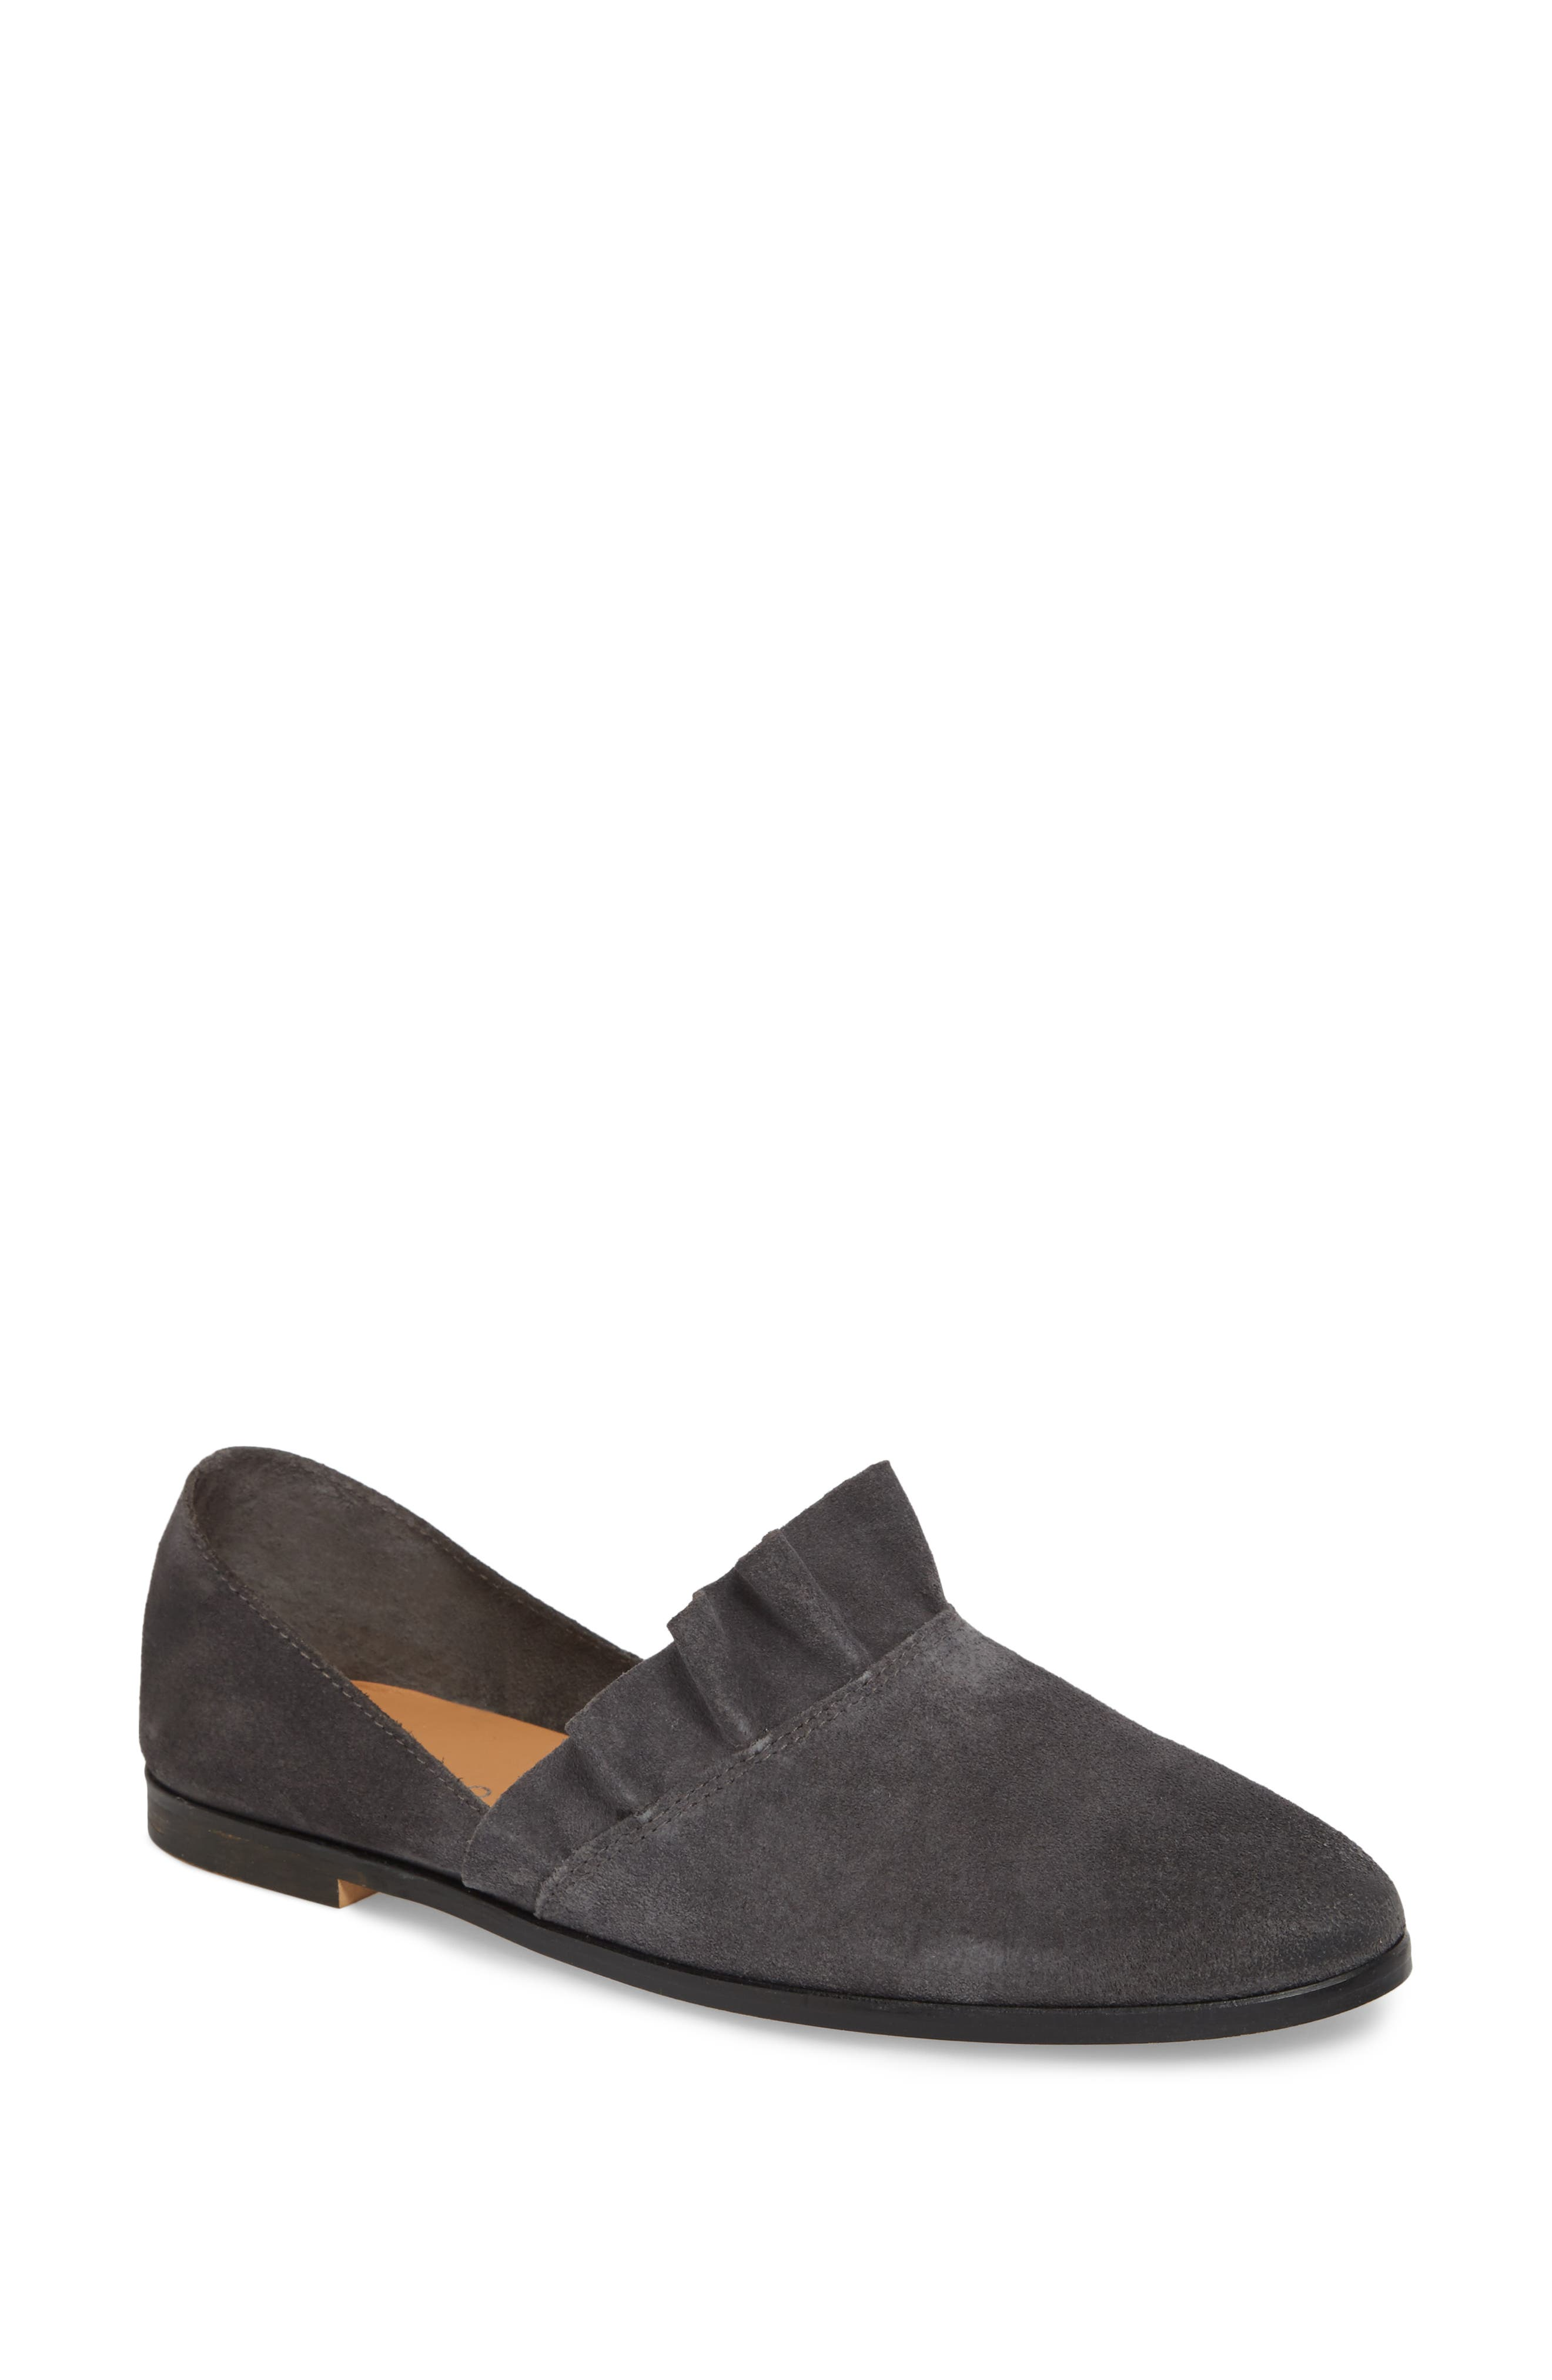 Gabbie Ruffle d'Orsay Flat,                         Main,                         color, Ink Suede